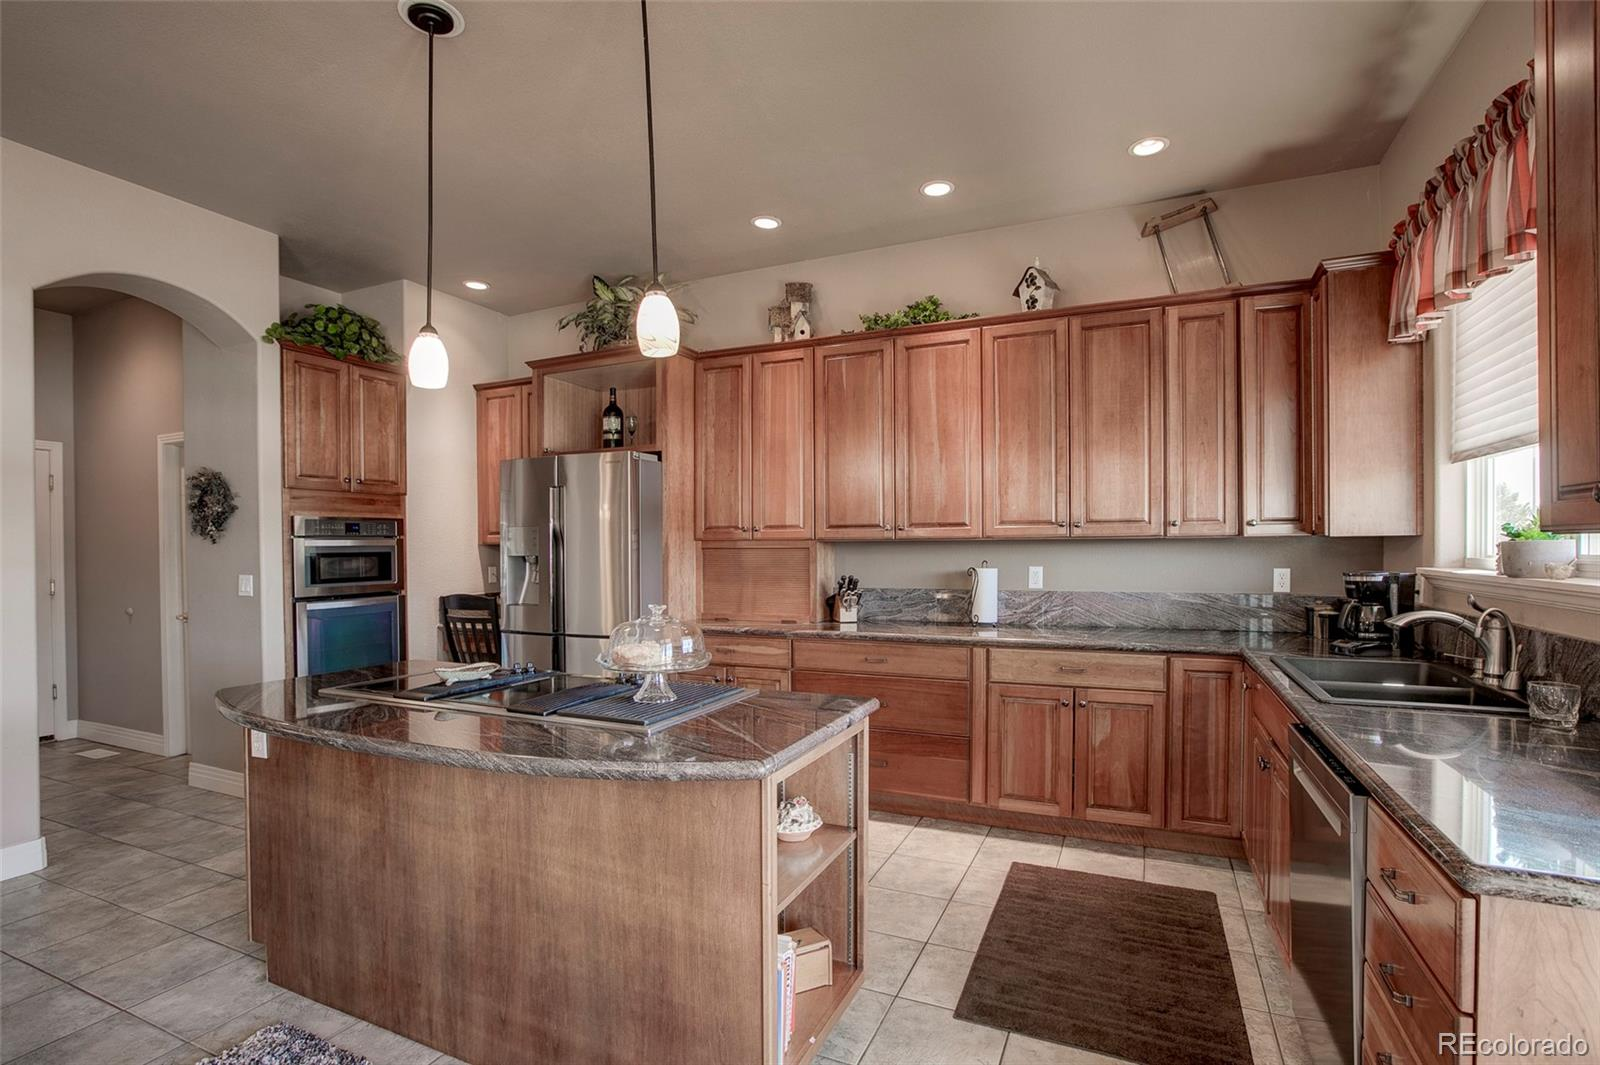 MLS# 7126152 - 15 - 5816 W Conservation Drive, Frederick, CO 80504